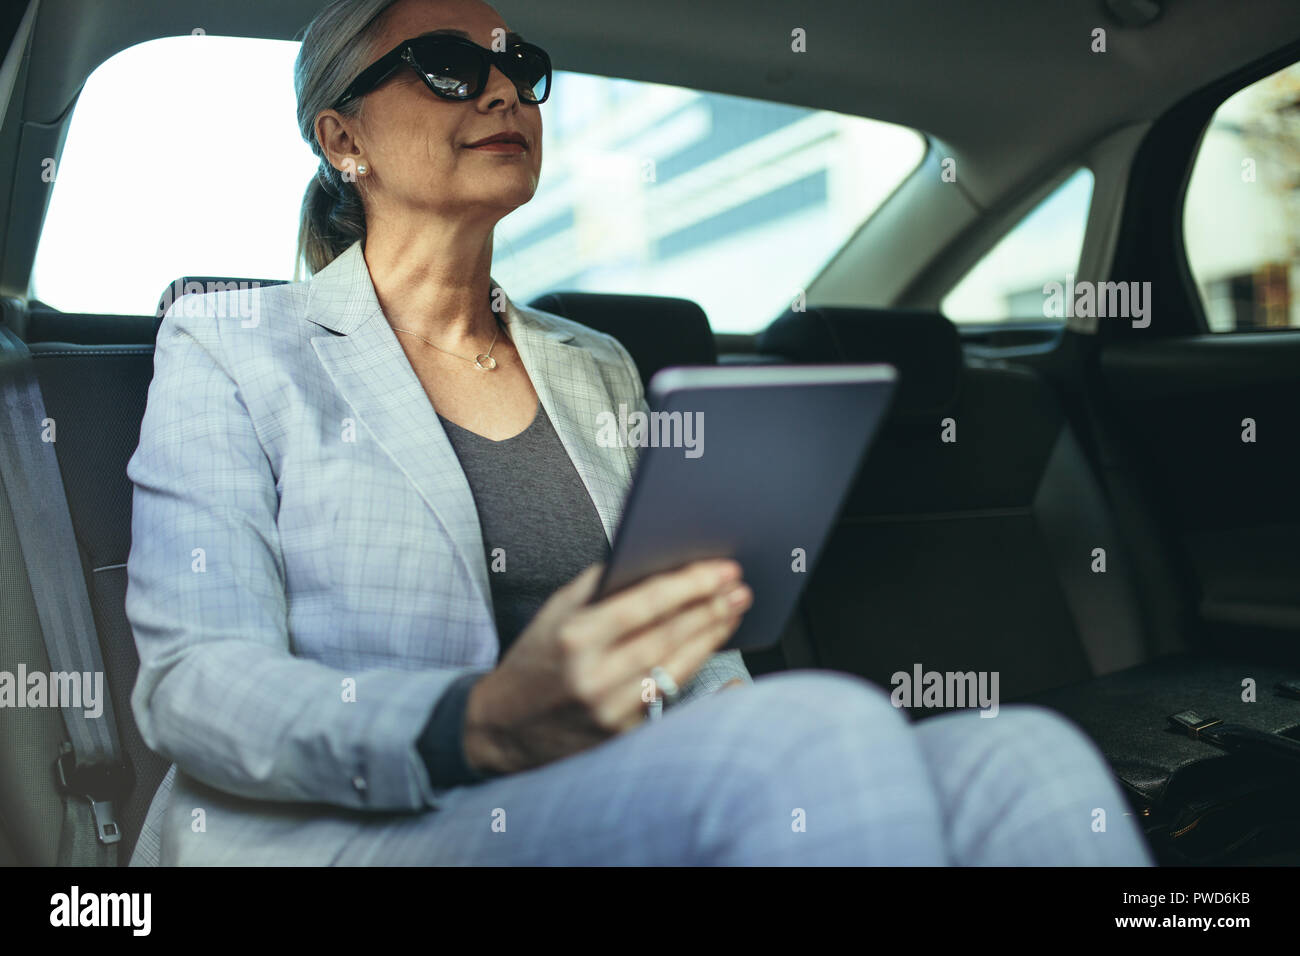 Female entrepreneur travelling to office in a luxurious car sitting on backseat with digital tablet. Senior businesswoman in car with tablet pc. - Stock Image